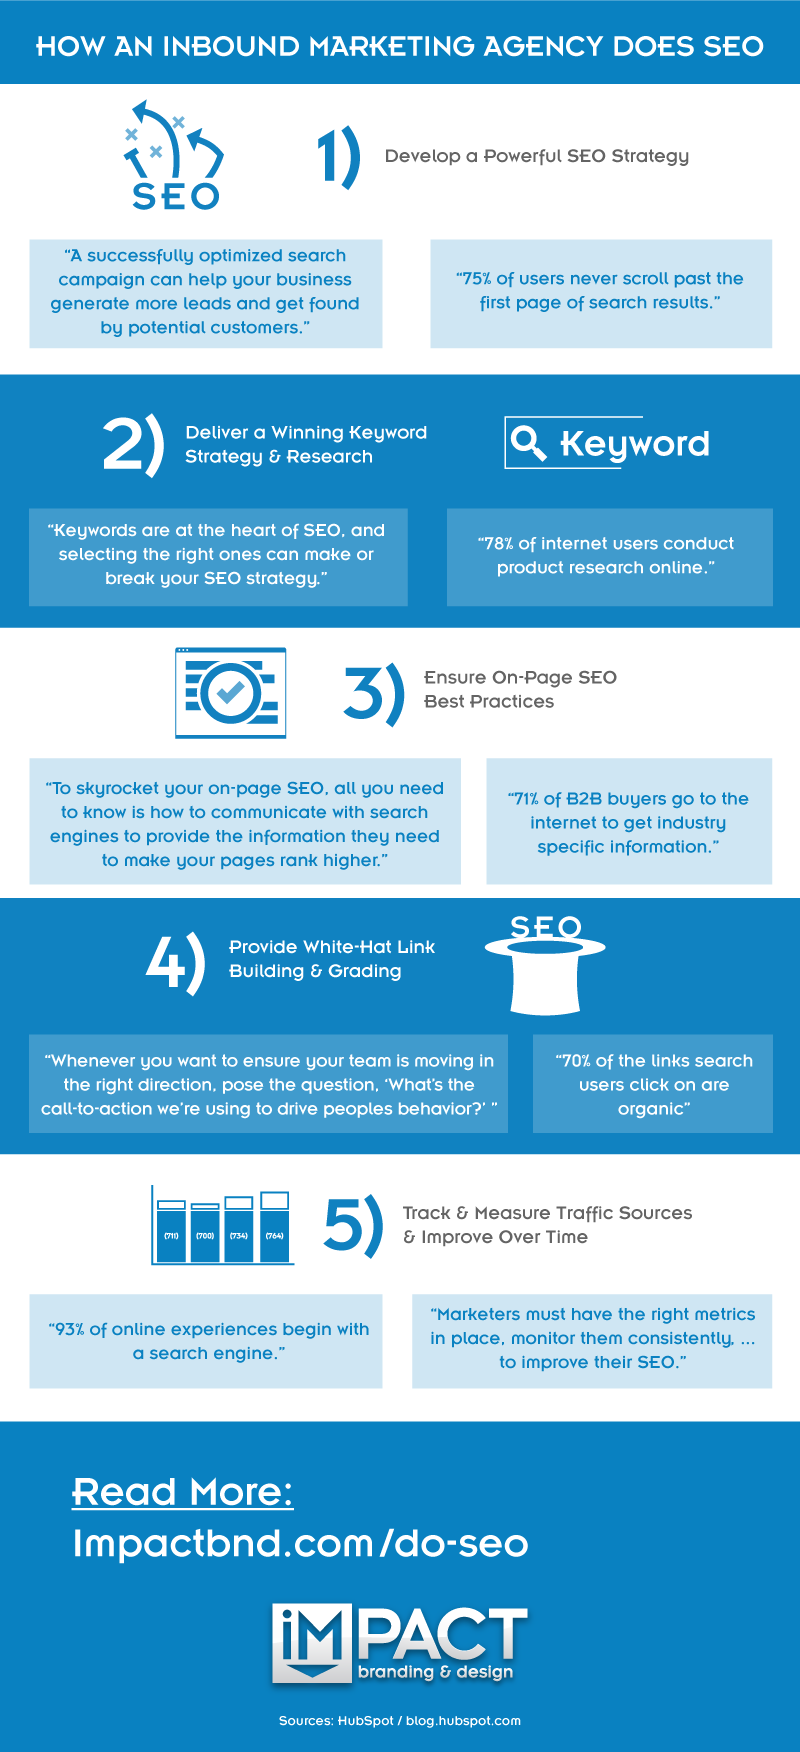 How to inbound marketing agency does SEO #infographic